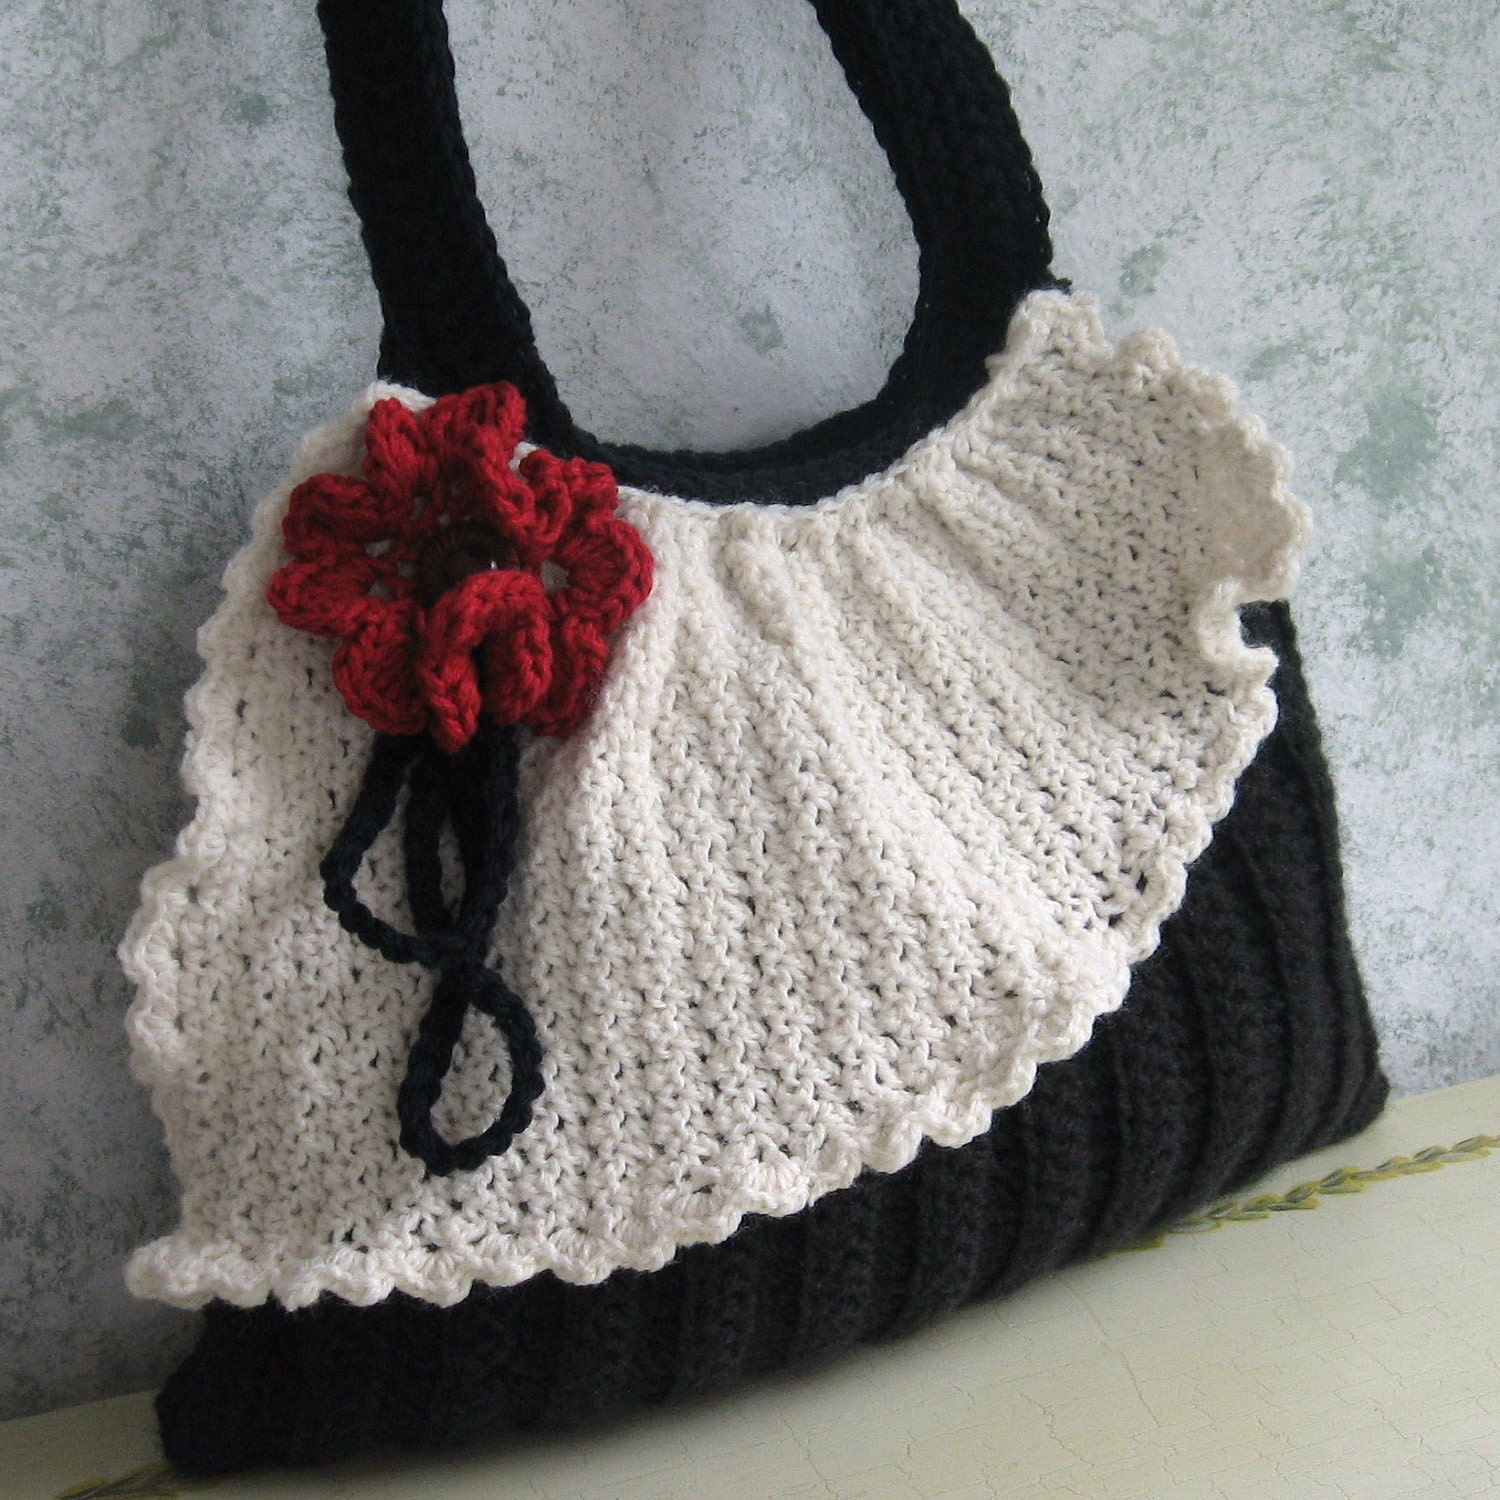 Crochet Patterns For Purses And Bags : Crochet Purse Pattern Pleated Bag With Drape And by kalliedesigns